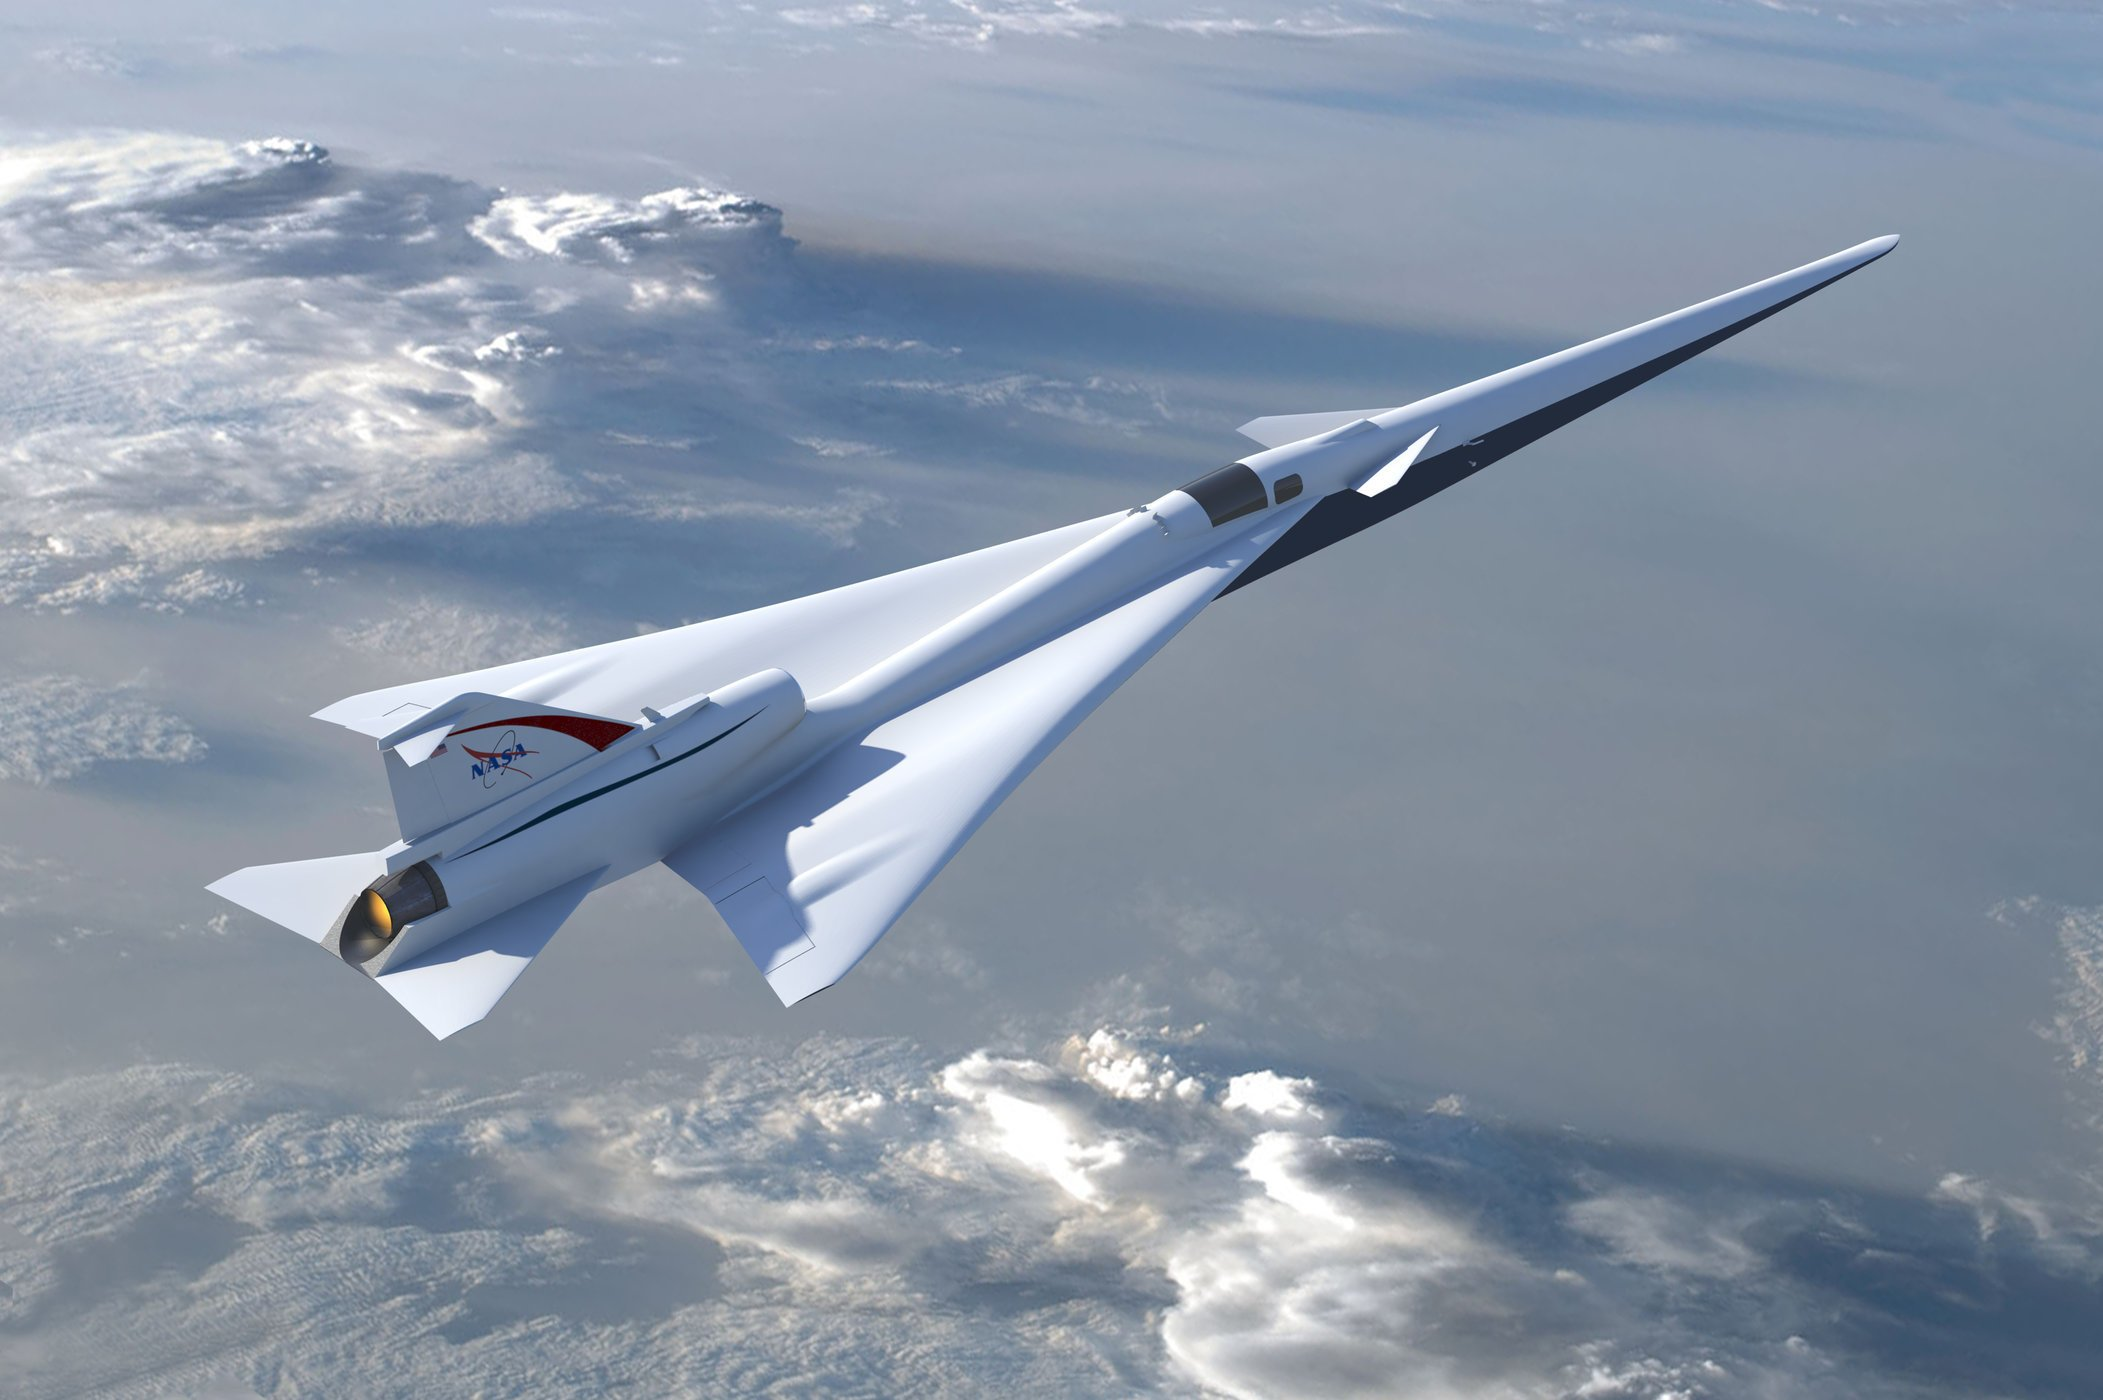 NASA awards Lockheed Martin $250 million contract for the development of a quiet supersonic aircraft